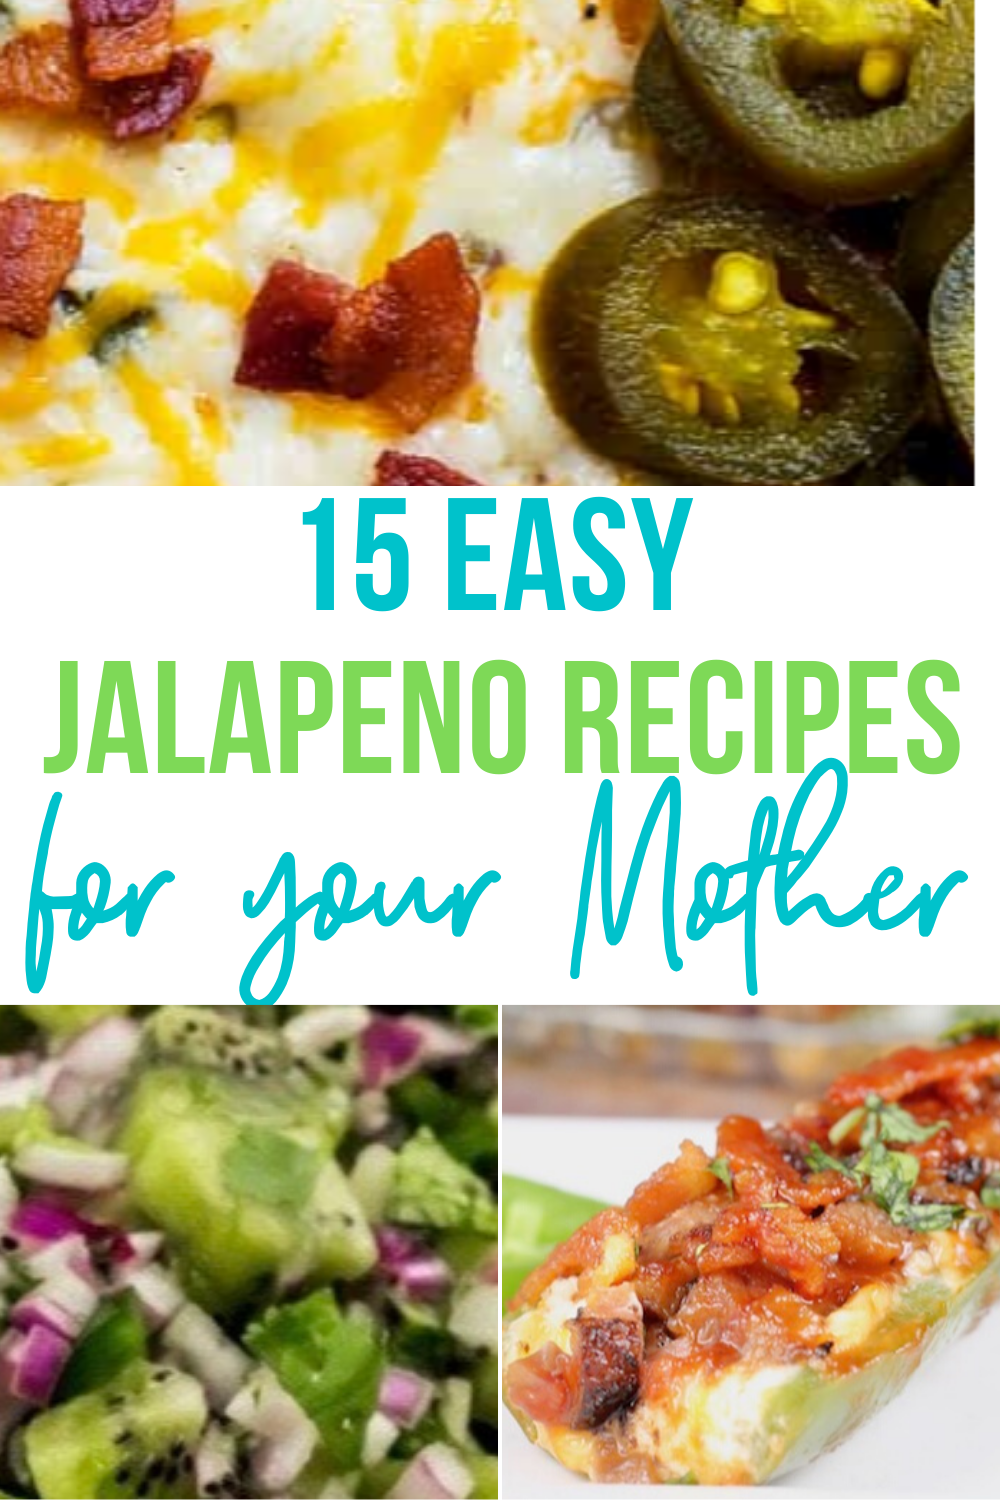 HotSpicyJalapenoRecipes - 15 Easy Jalapeno Recipes - Perfect Mother's Day Appetizers